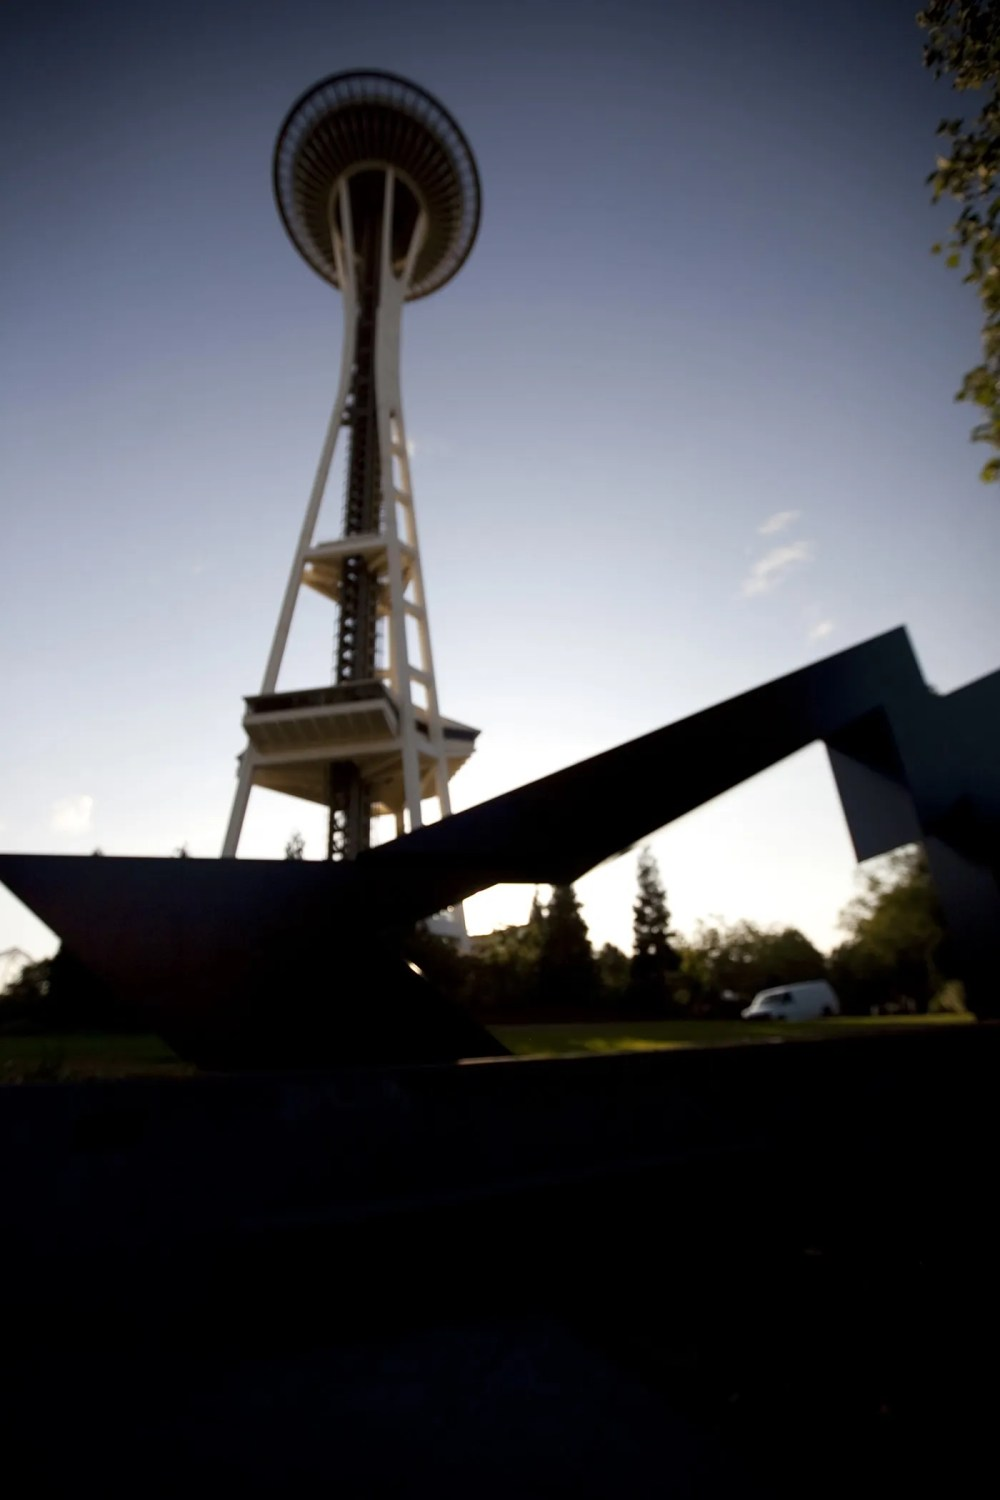 The Space Needle in Seattle, Washington.